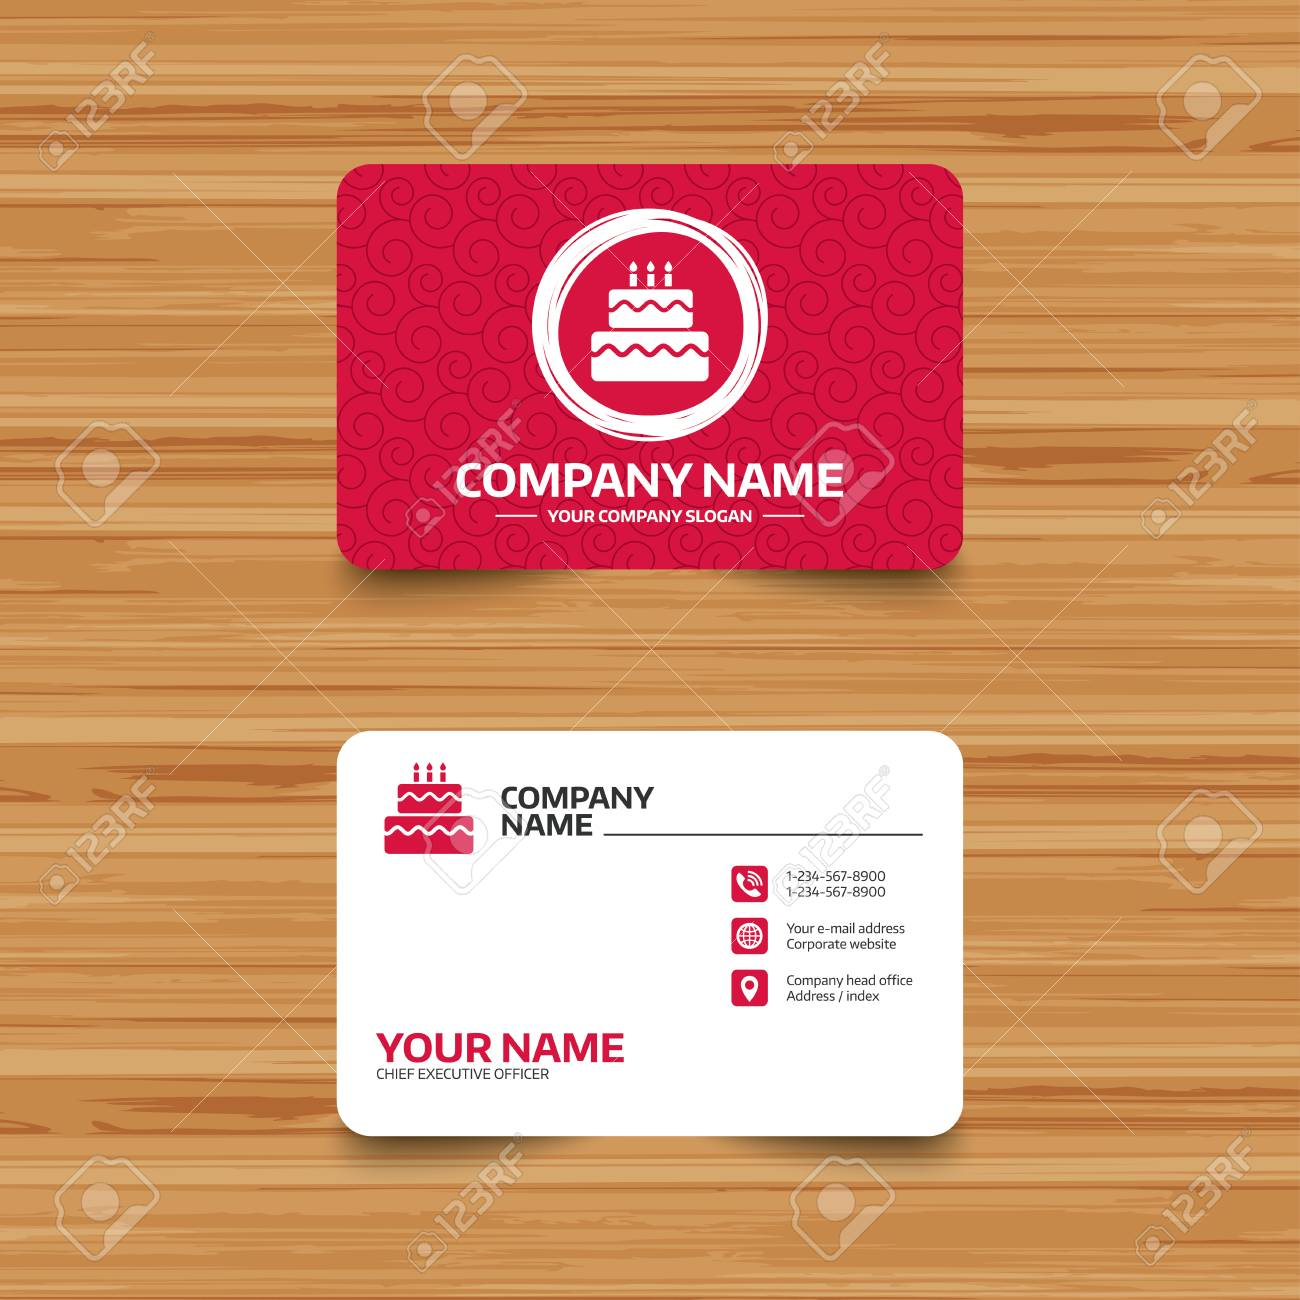 Business Card Template With Texture Birthday Cake Sign Icon - Cake business card template